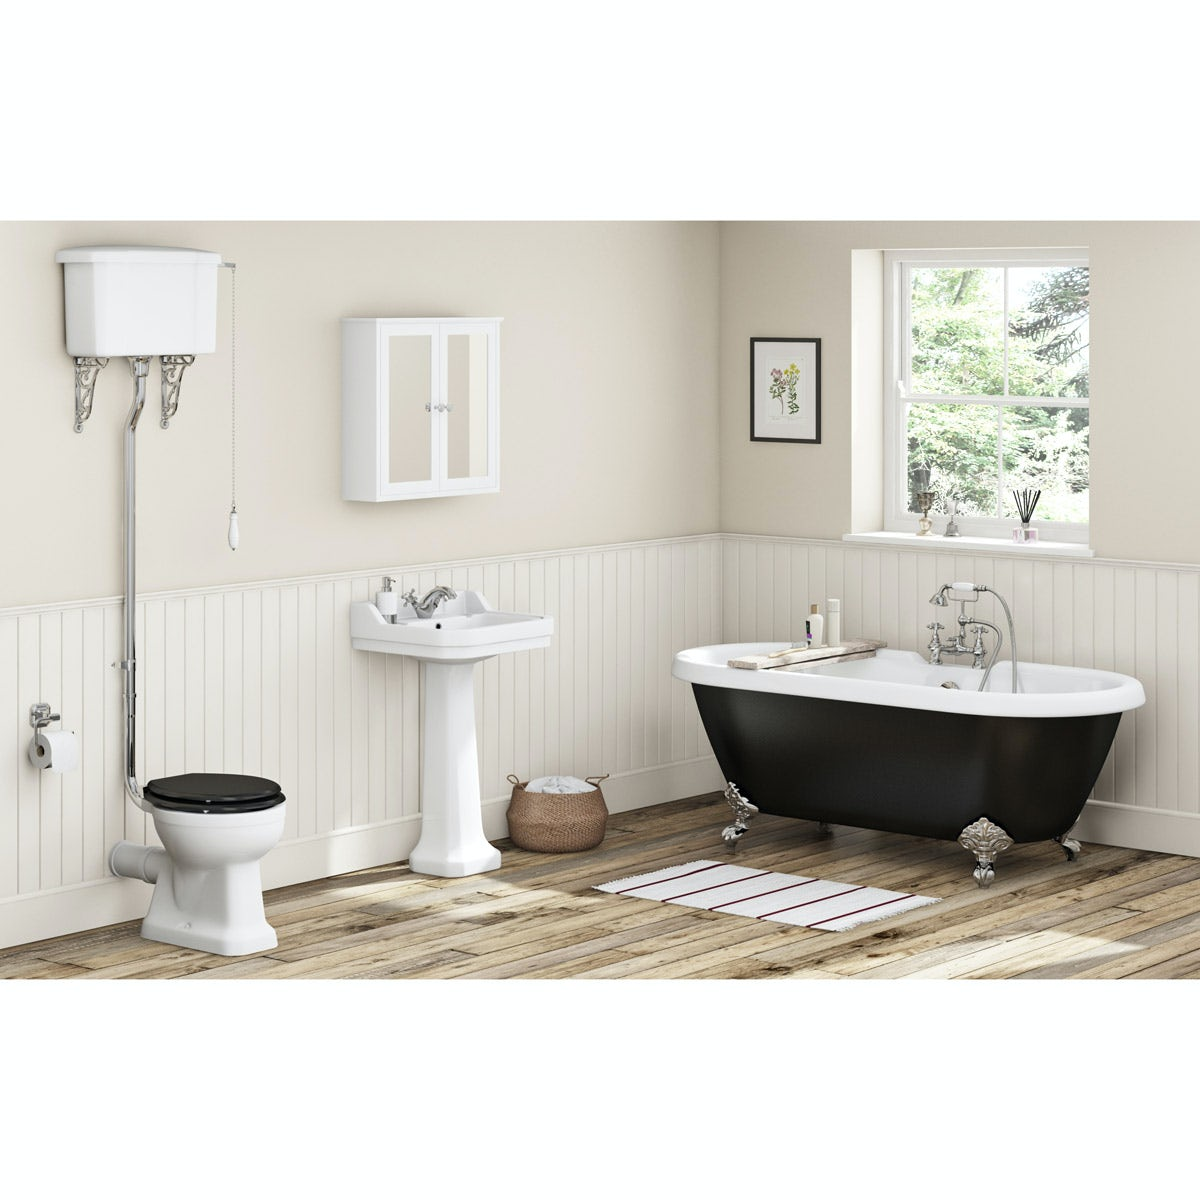 Camberley black high level bathroom suite with freestanding bath